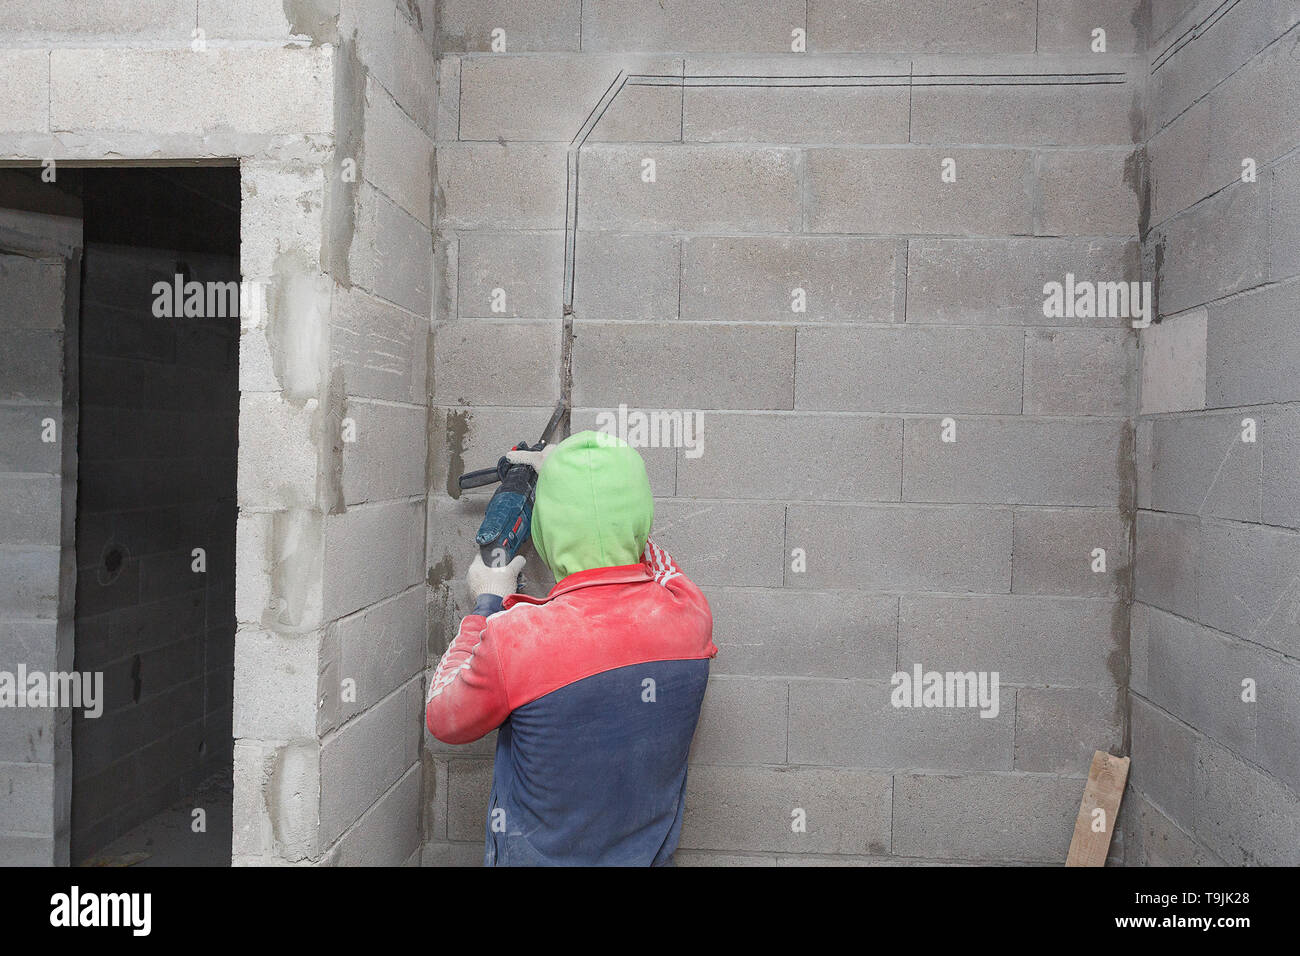 A laborer prepares a wall for laying electrical wiring, while building a residential  house Stock Photo - AlamyAlamy